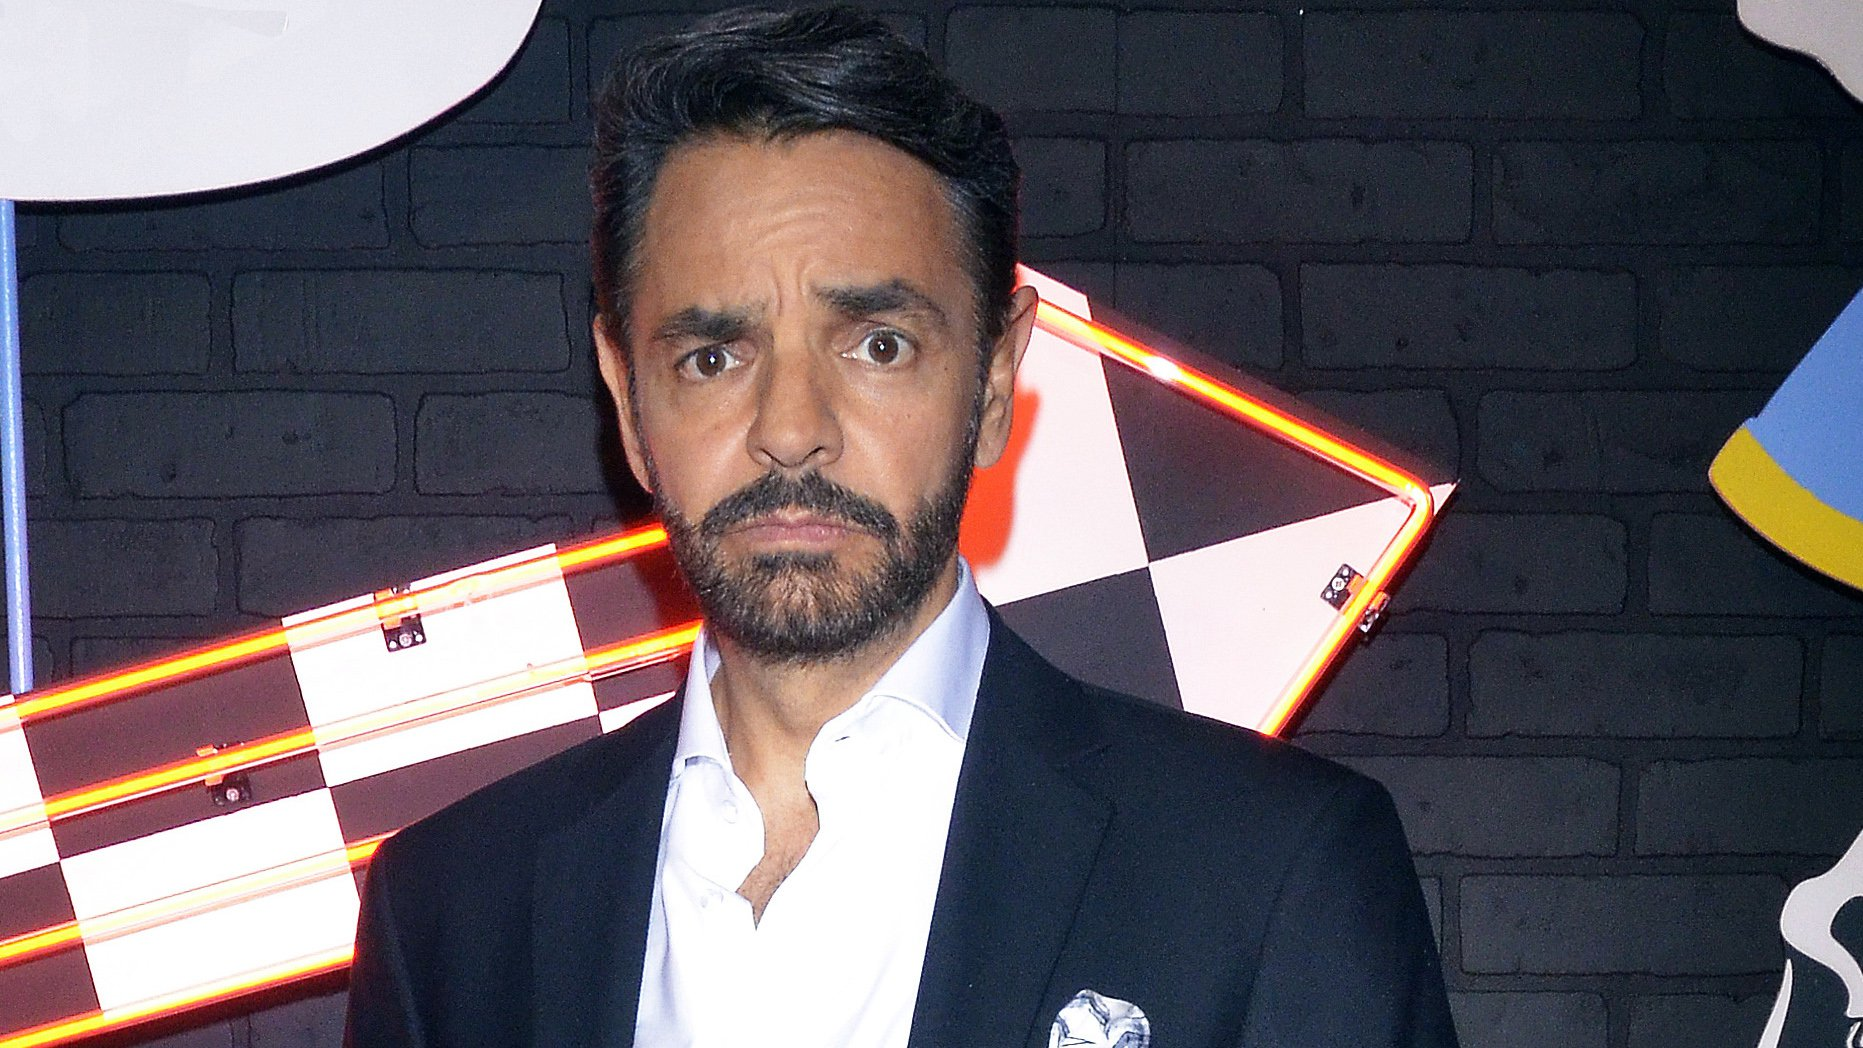 eugenio derbez hollywood.jpg